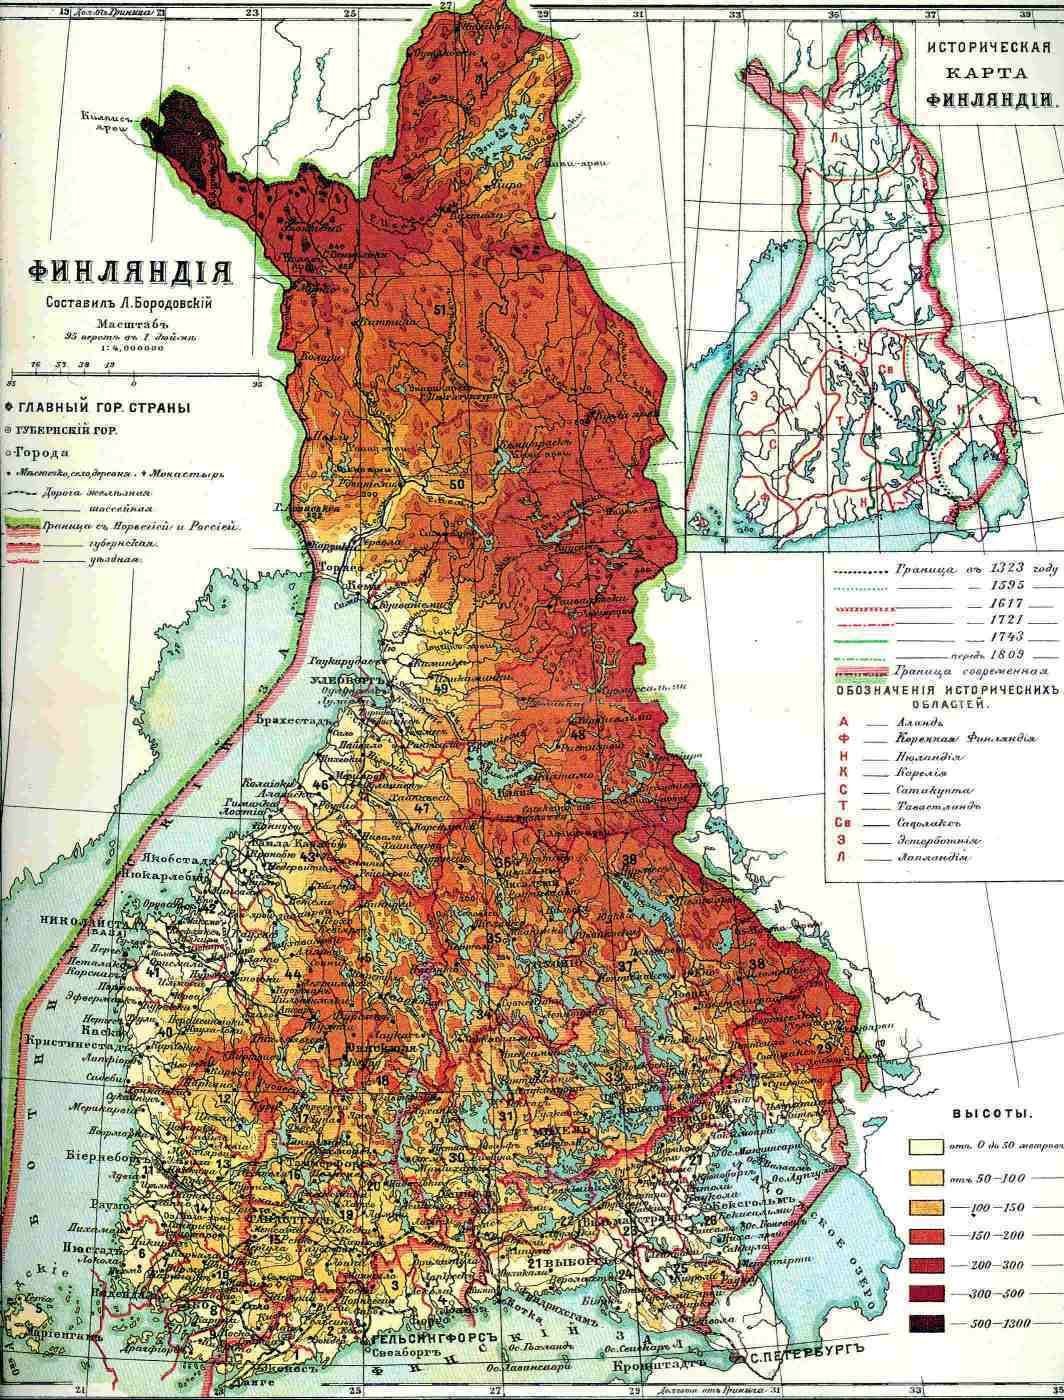 1900 Russian map of the Grand Duchy of Finland   mapmania   History on africa map, poland map, united kingdom map, soviet union map, asia map, baltic map, china map, germany map, iraq map, france map, japan map, romania map, australia map, europe map, korea map, eurasia map, india map, saudi arabia map, canada map, italy map,